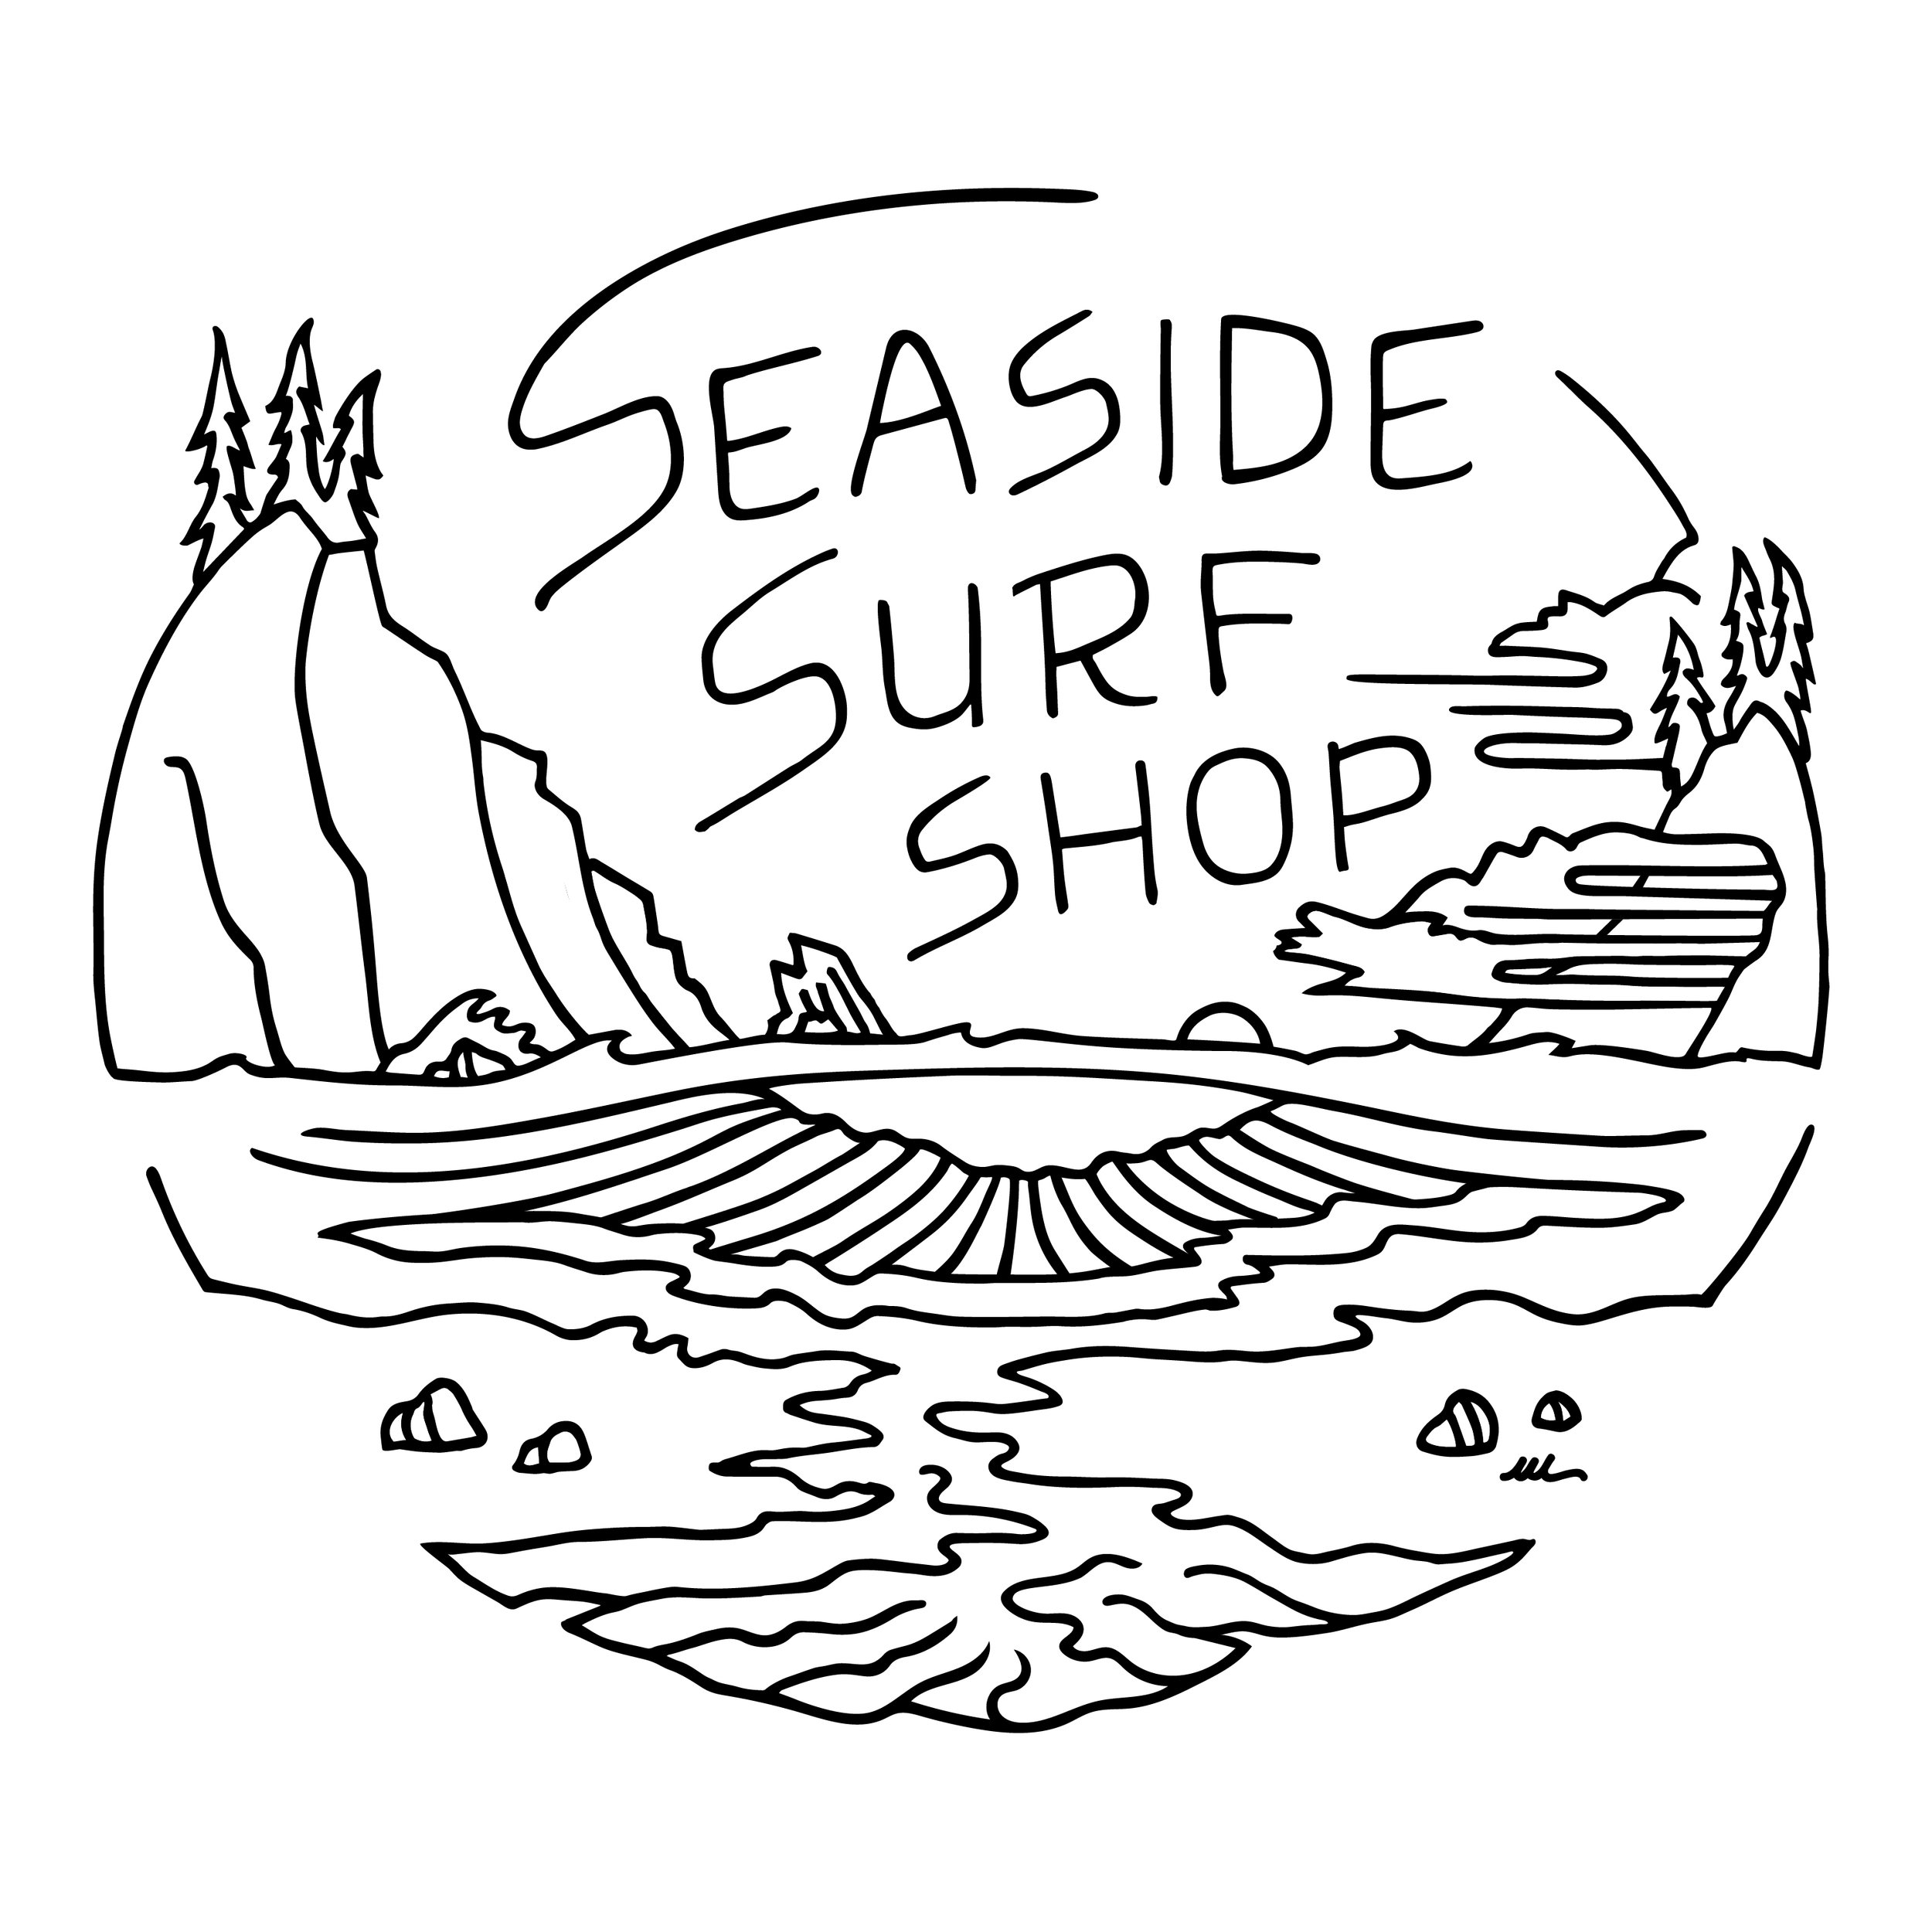 Seaside Surf t-shirt design